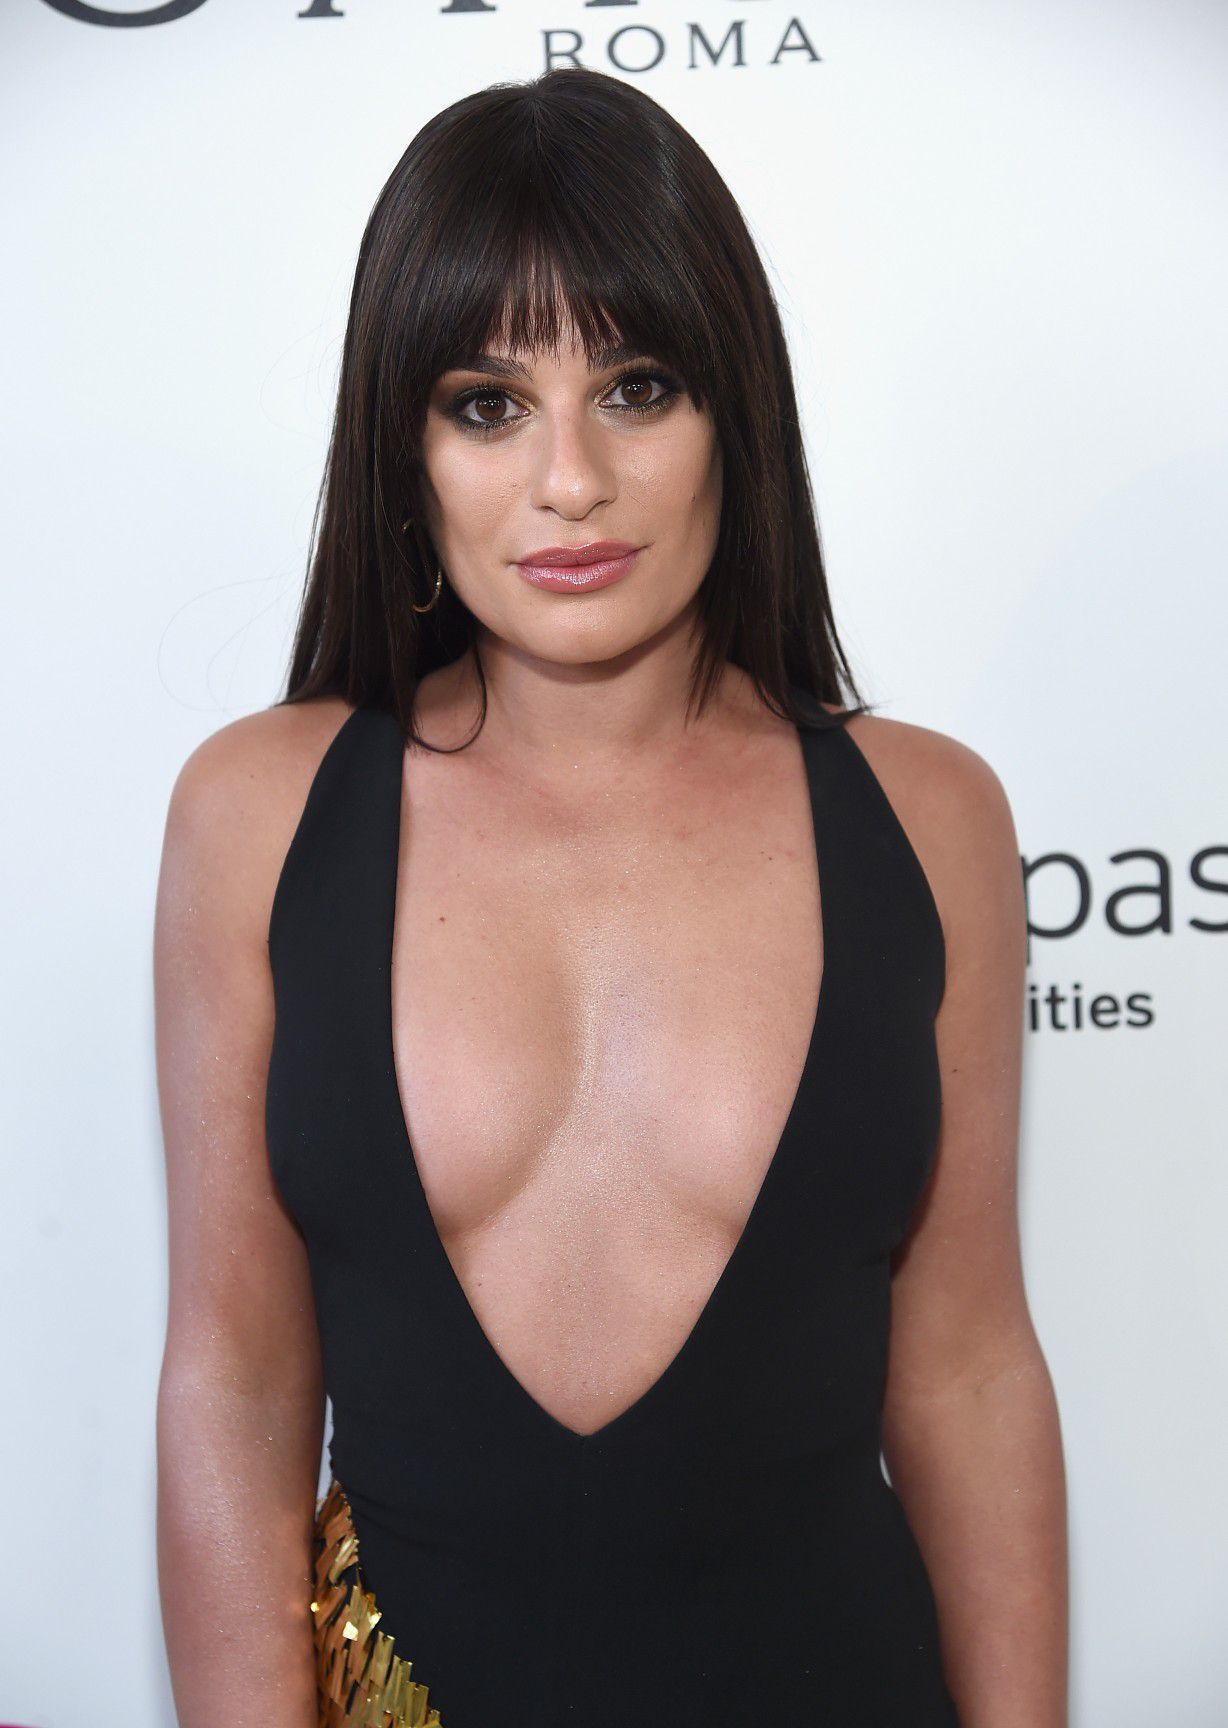 lea-michele-nip-slip-and-cleavage-at-elton-johns-aids-foundation-oscars-viewing-party-9524